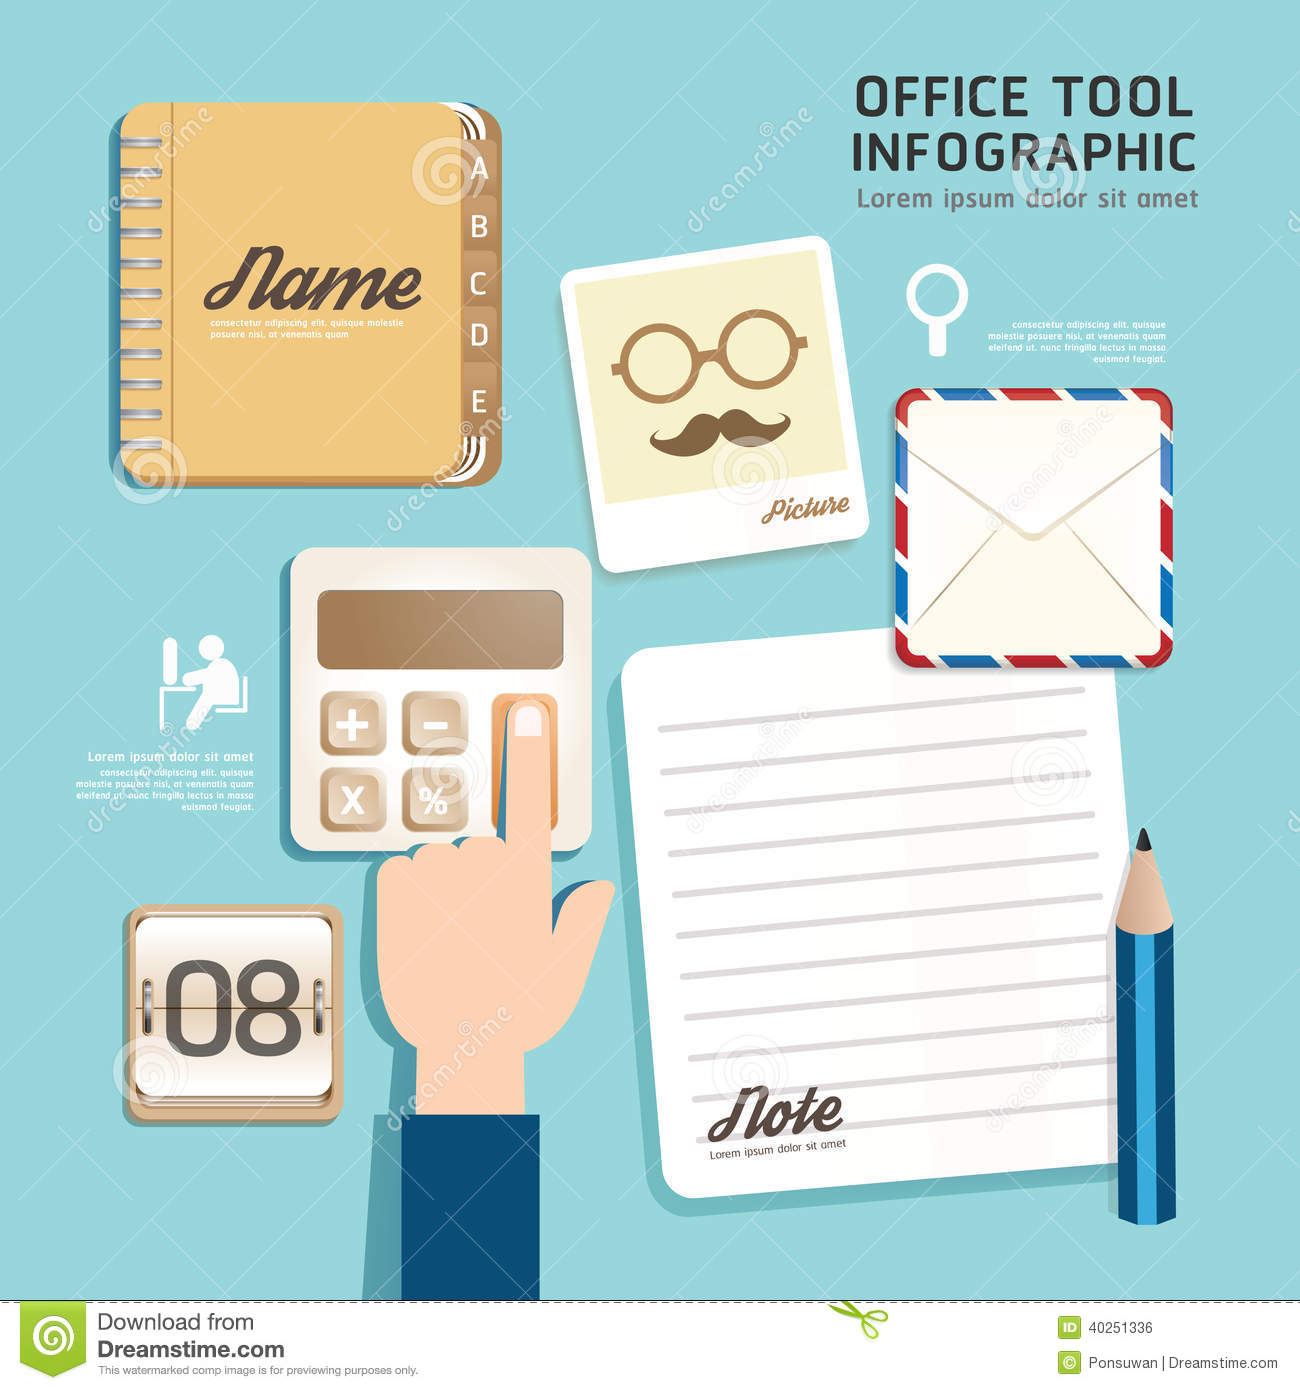 infographic flat design icons office tool concept vector